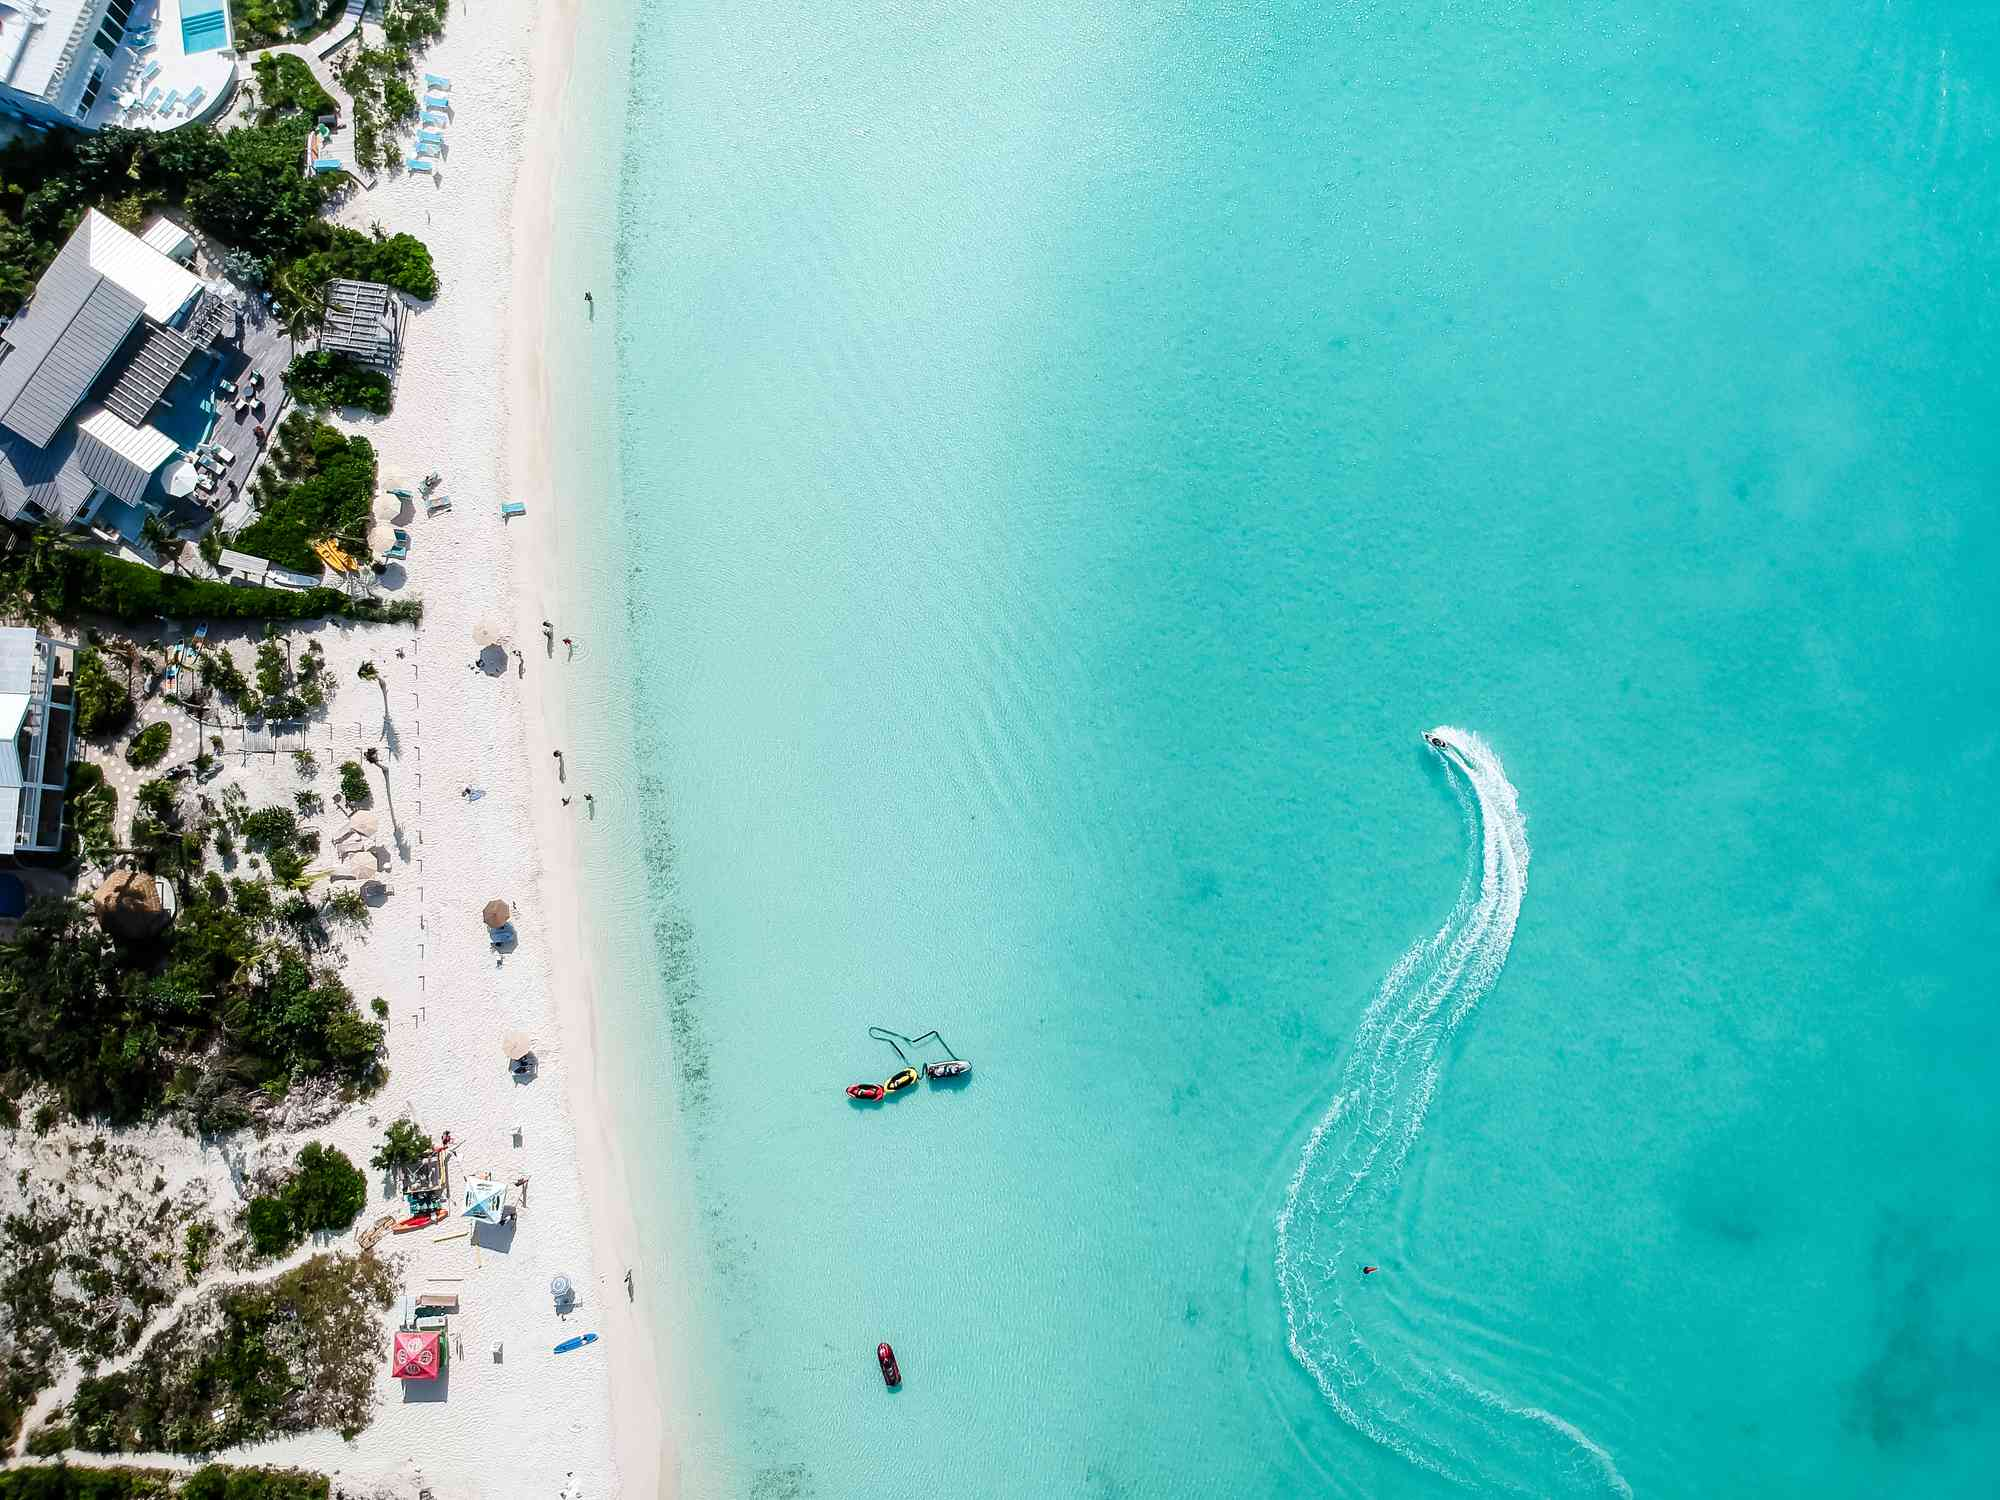 aerial view of a white sand beach and a jet ski in clear blue water